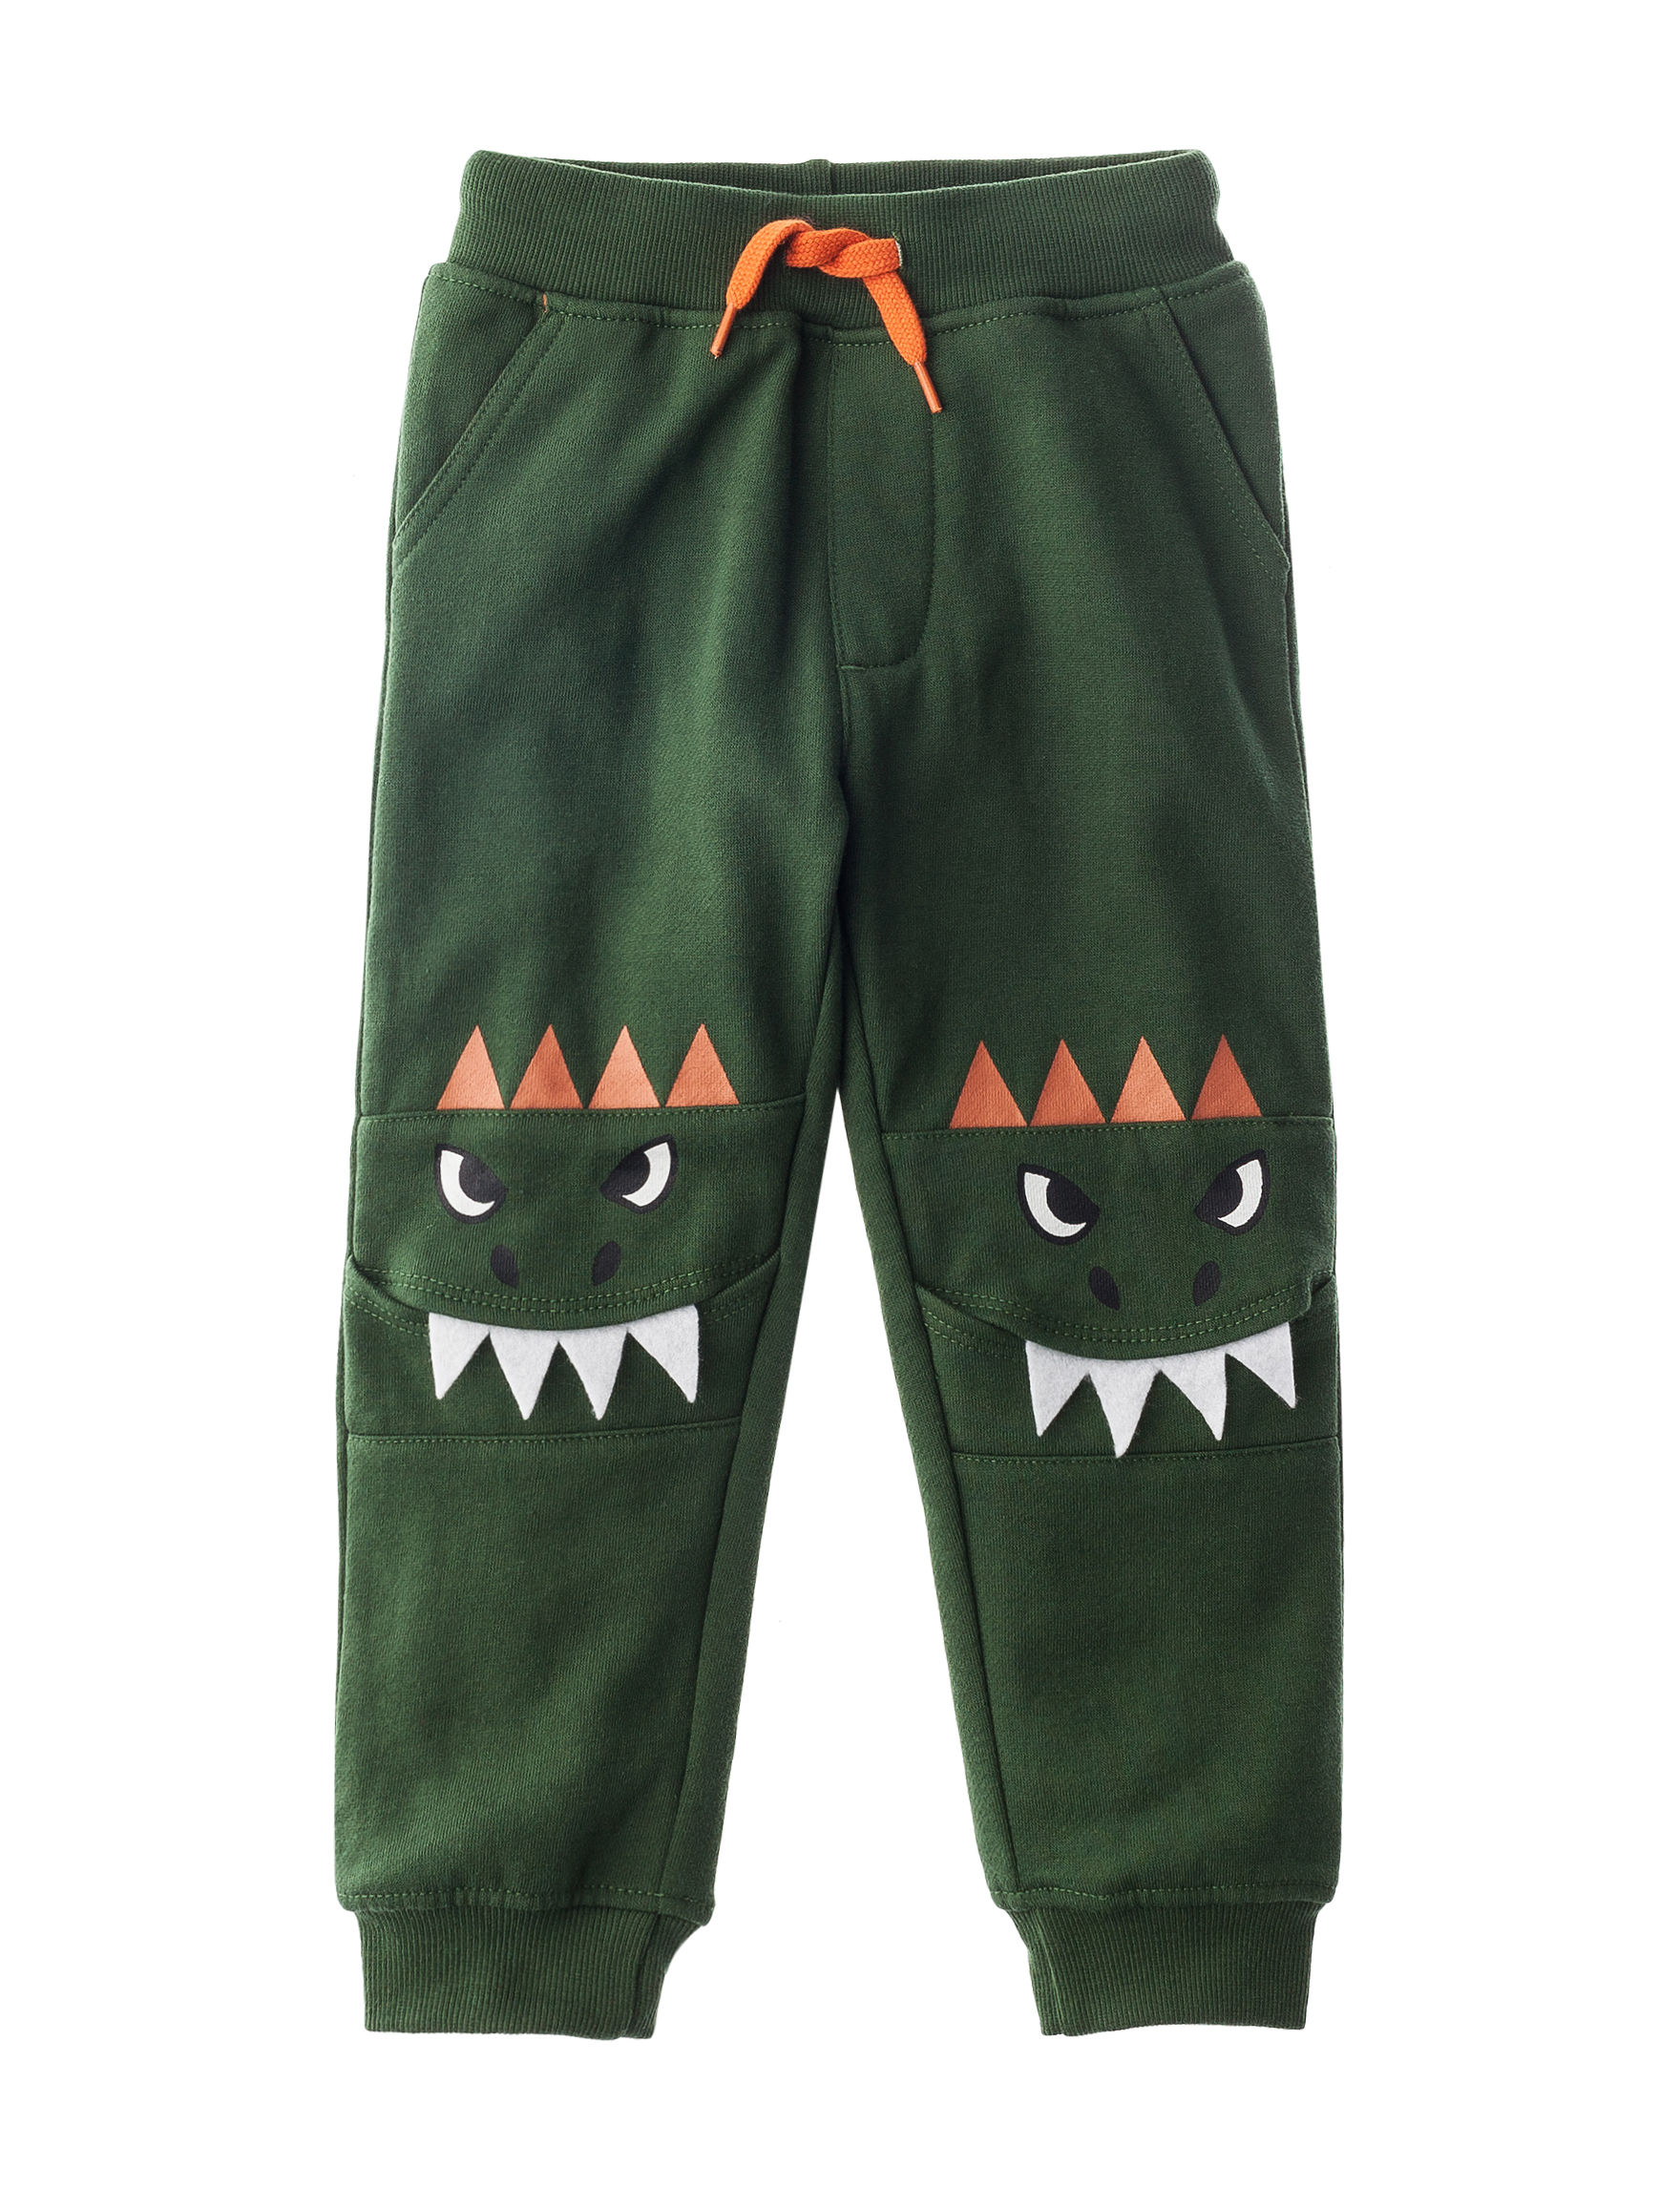 Rustic Blue Green Soft Pants